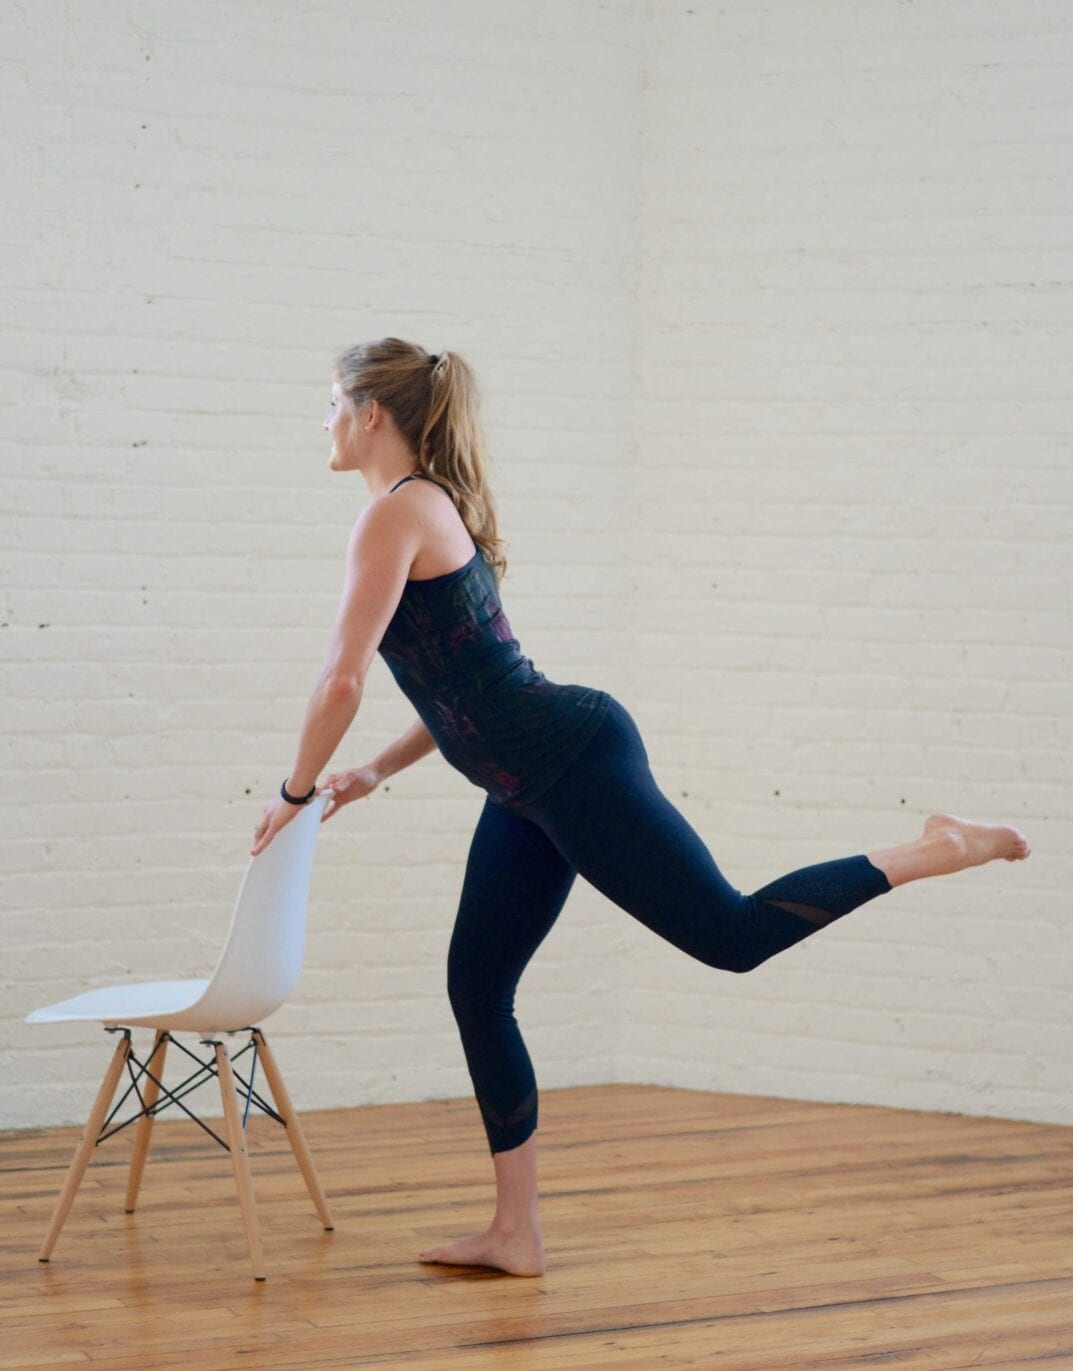 barre buns + thighs home workout | Grab a chair and get ready to tone your derriere with these 10 ballet-inspired moves! | www.nourishmovelove.com